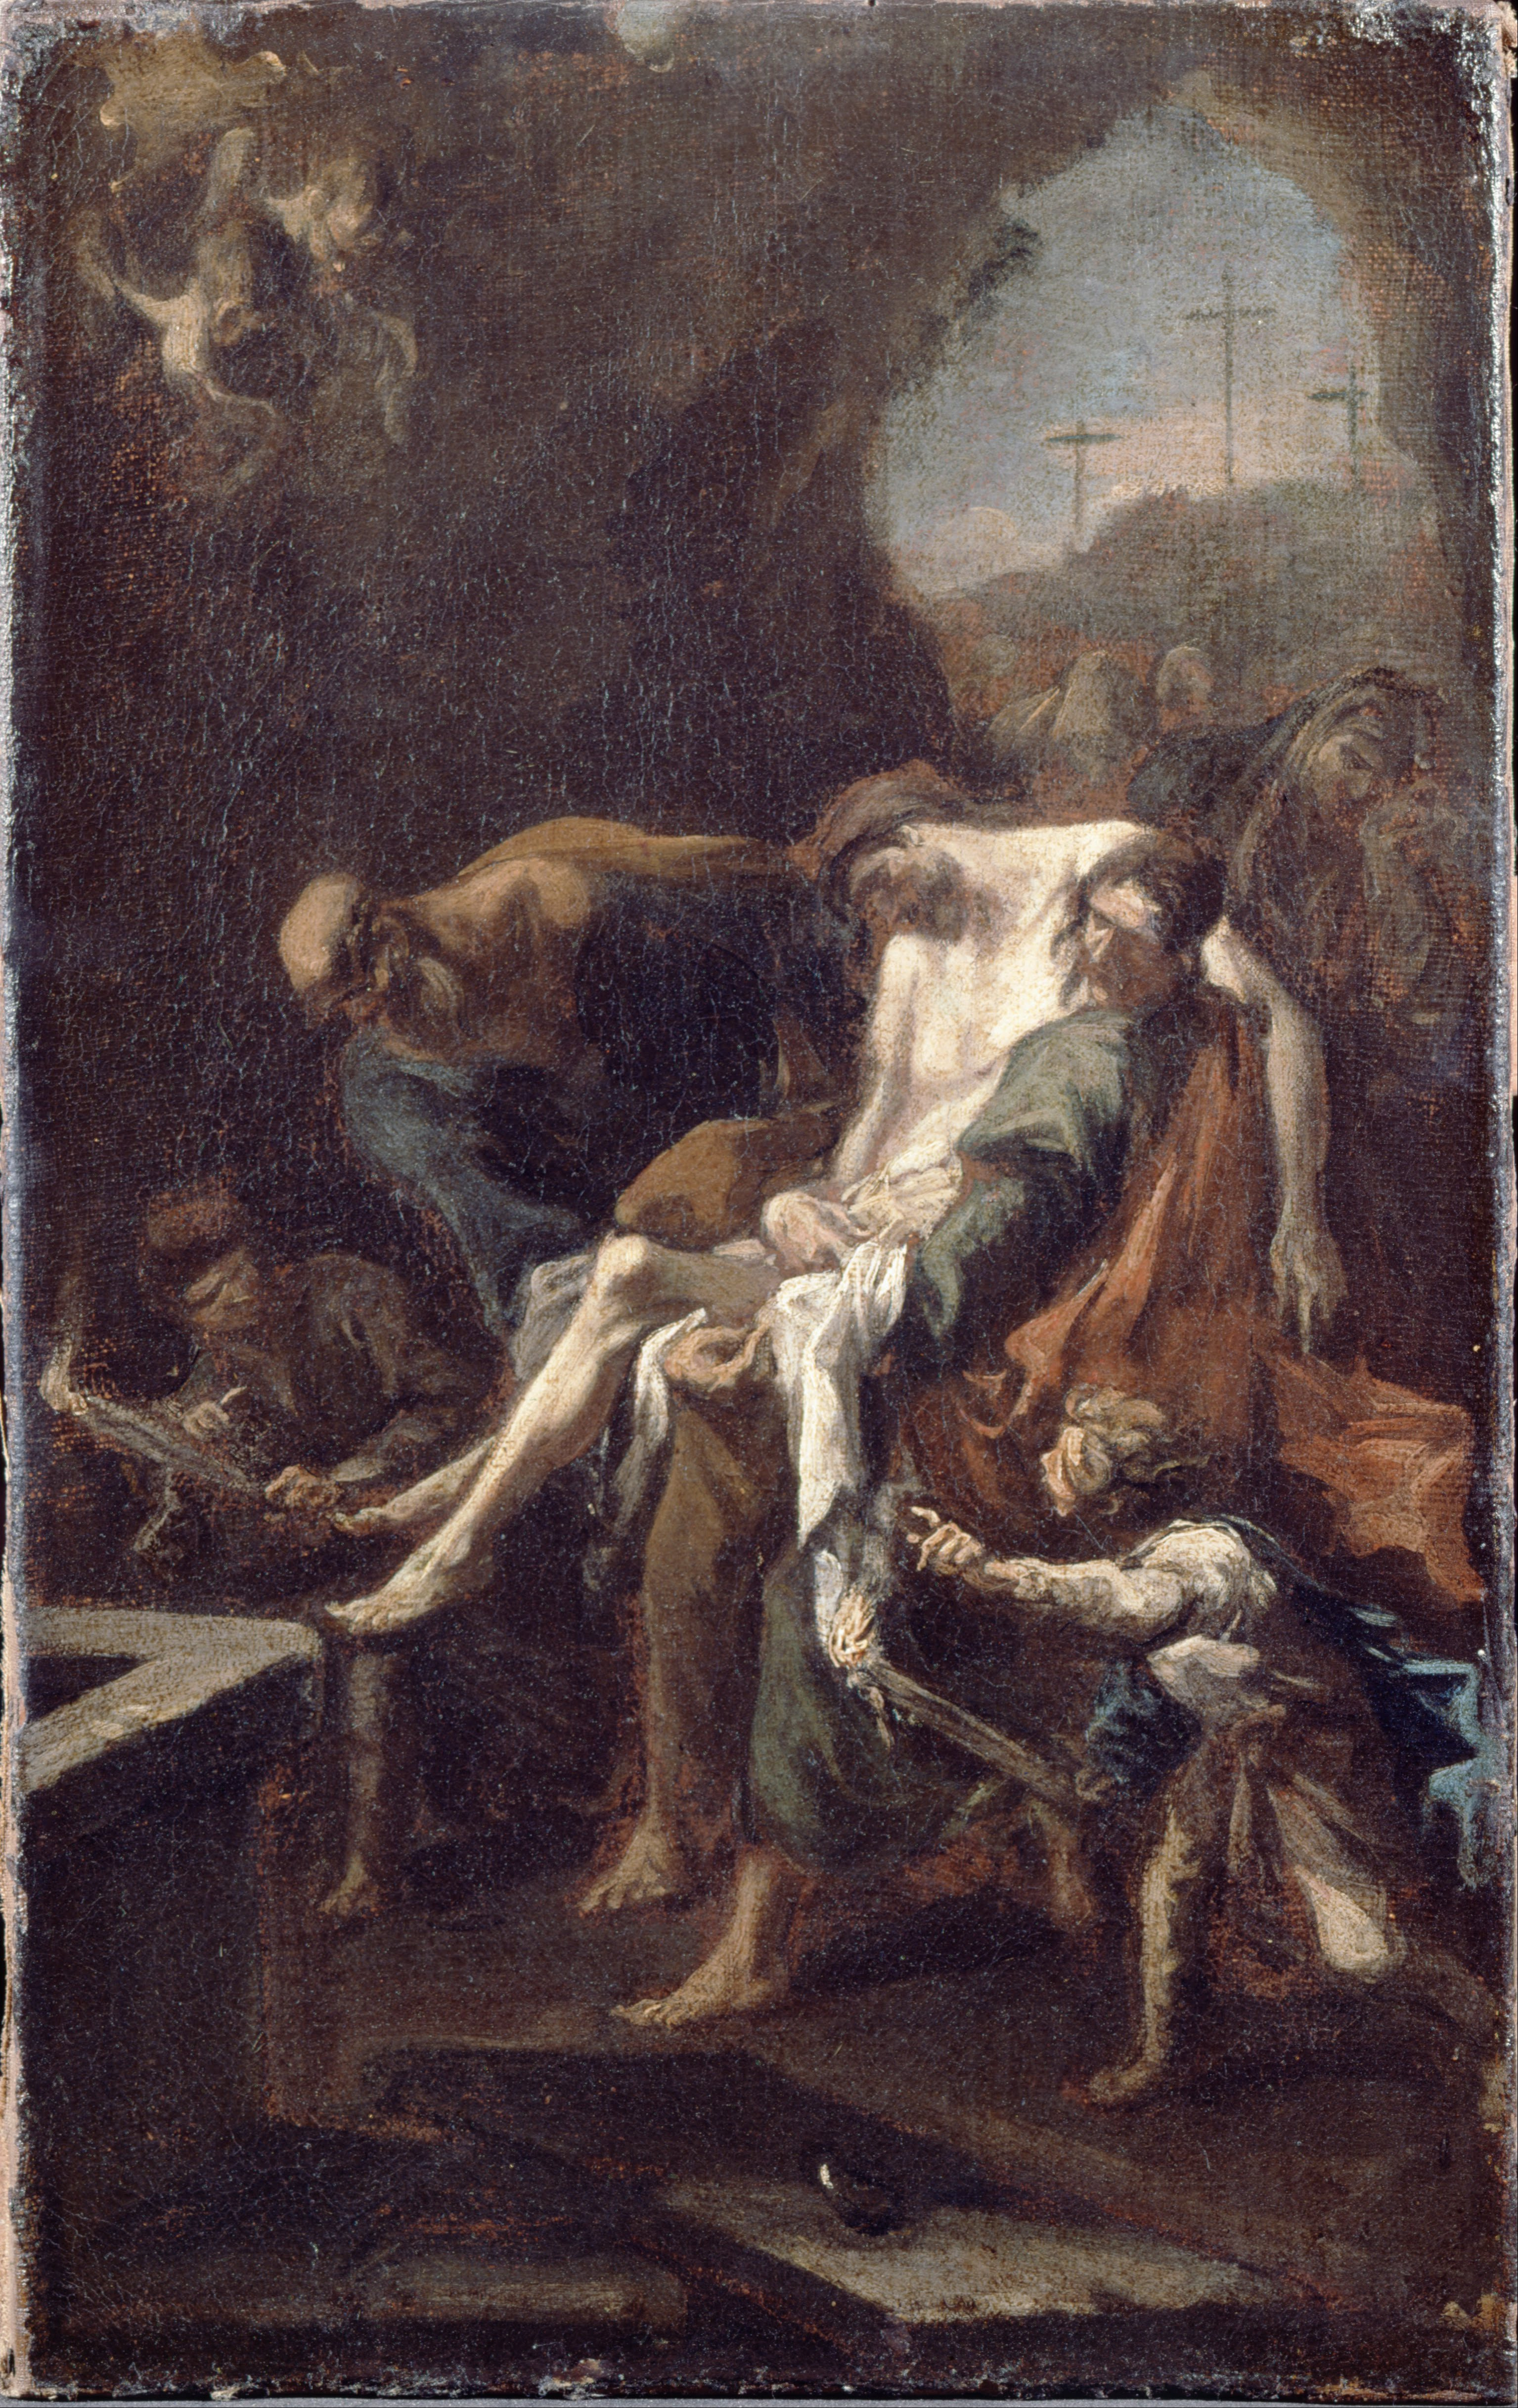 a history of the entombment of christ Domenikos theotokopoulos, called el greco candia (herakleion), crete circa 1541 - 1614 toledo the entombment of christ estimate: 1,000,000 - 1,500,000 usd.